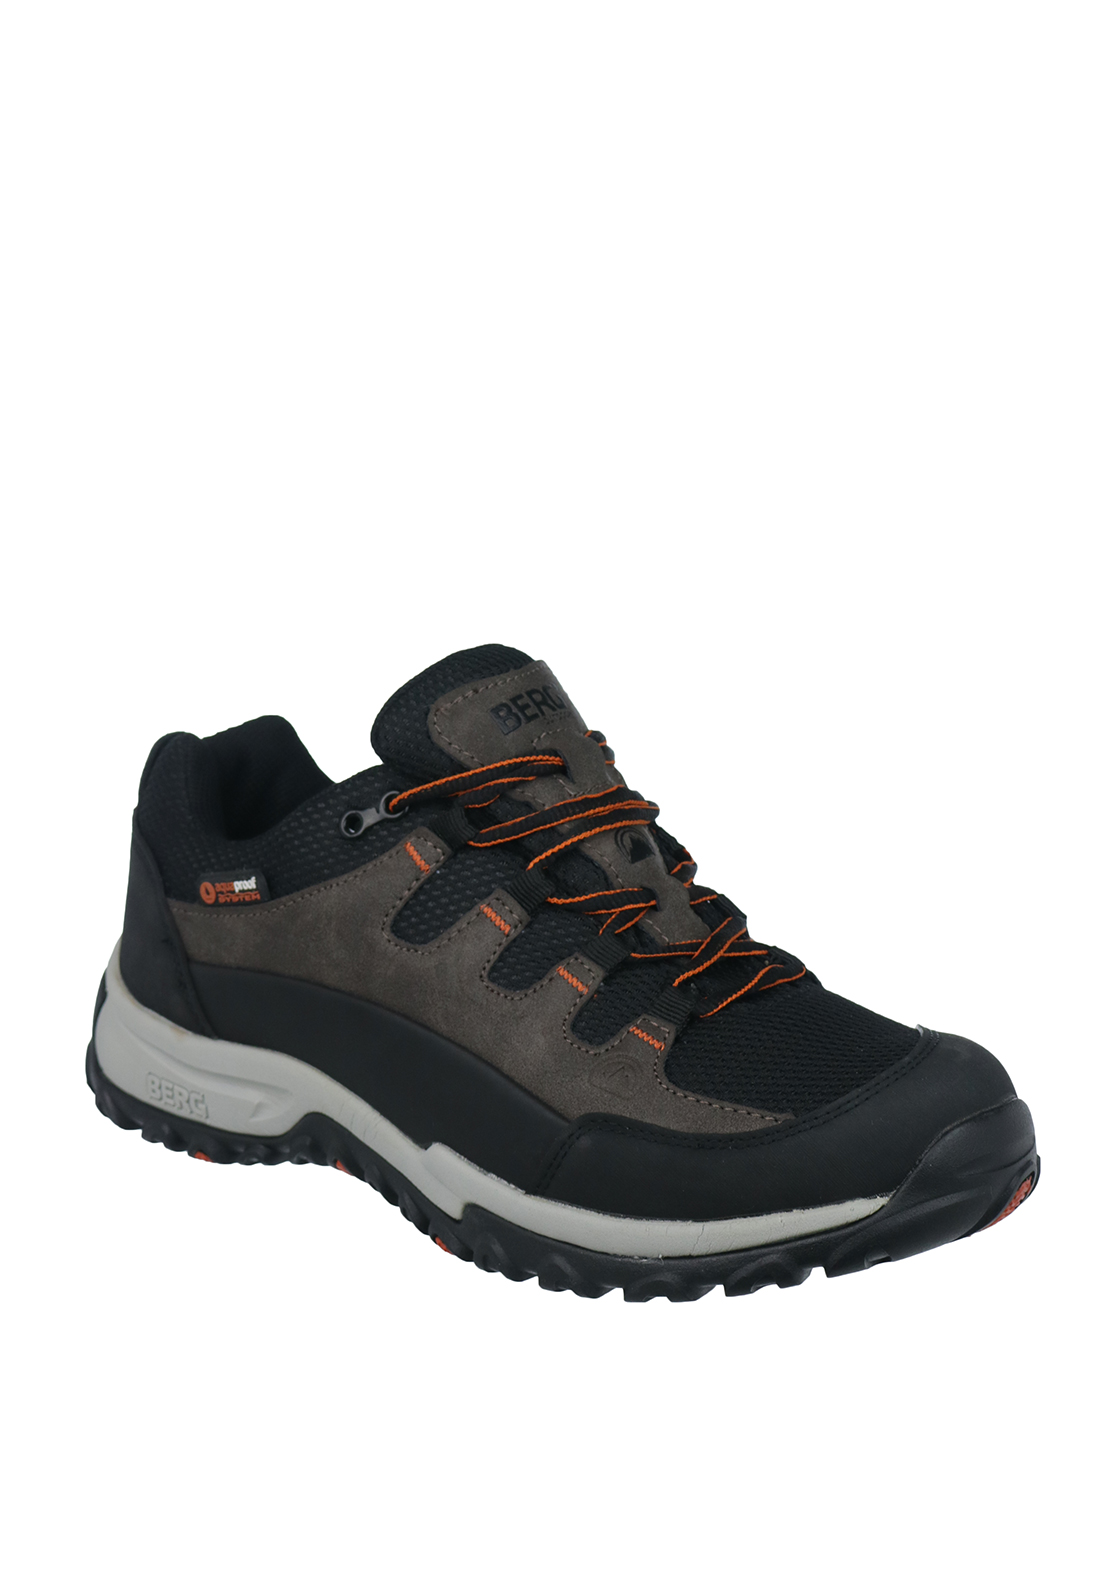 Berg Outdoor Mens Wallaroo Laced Sneakers, Brown